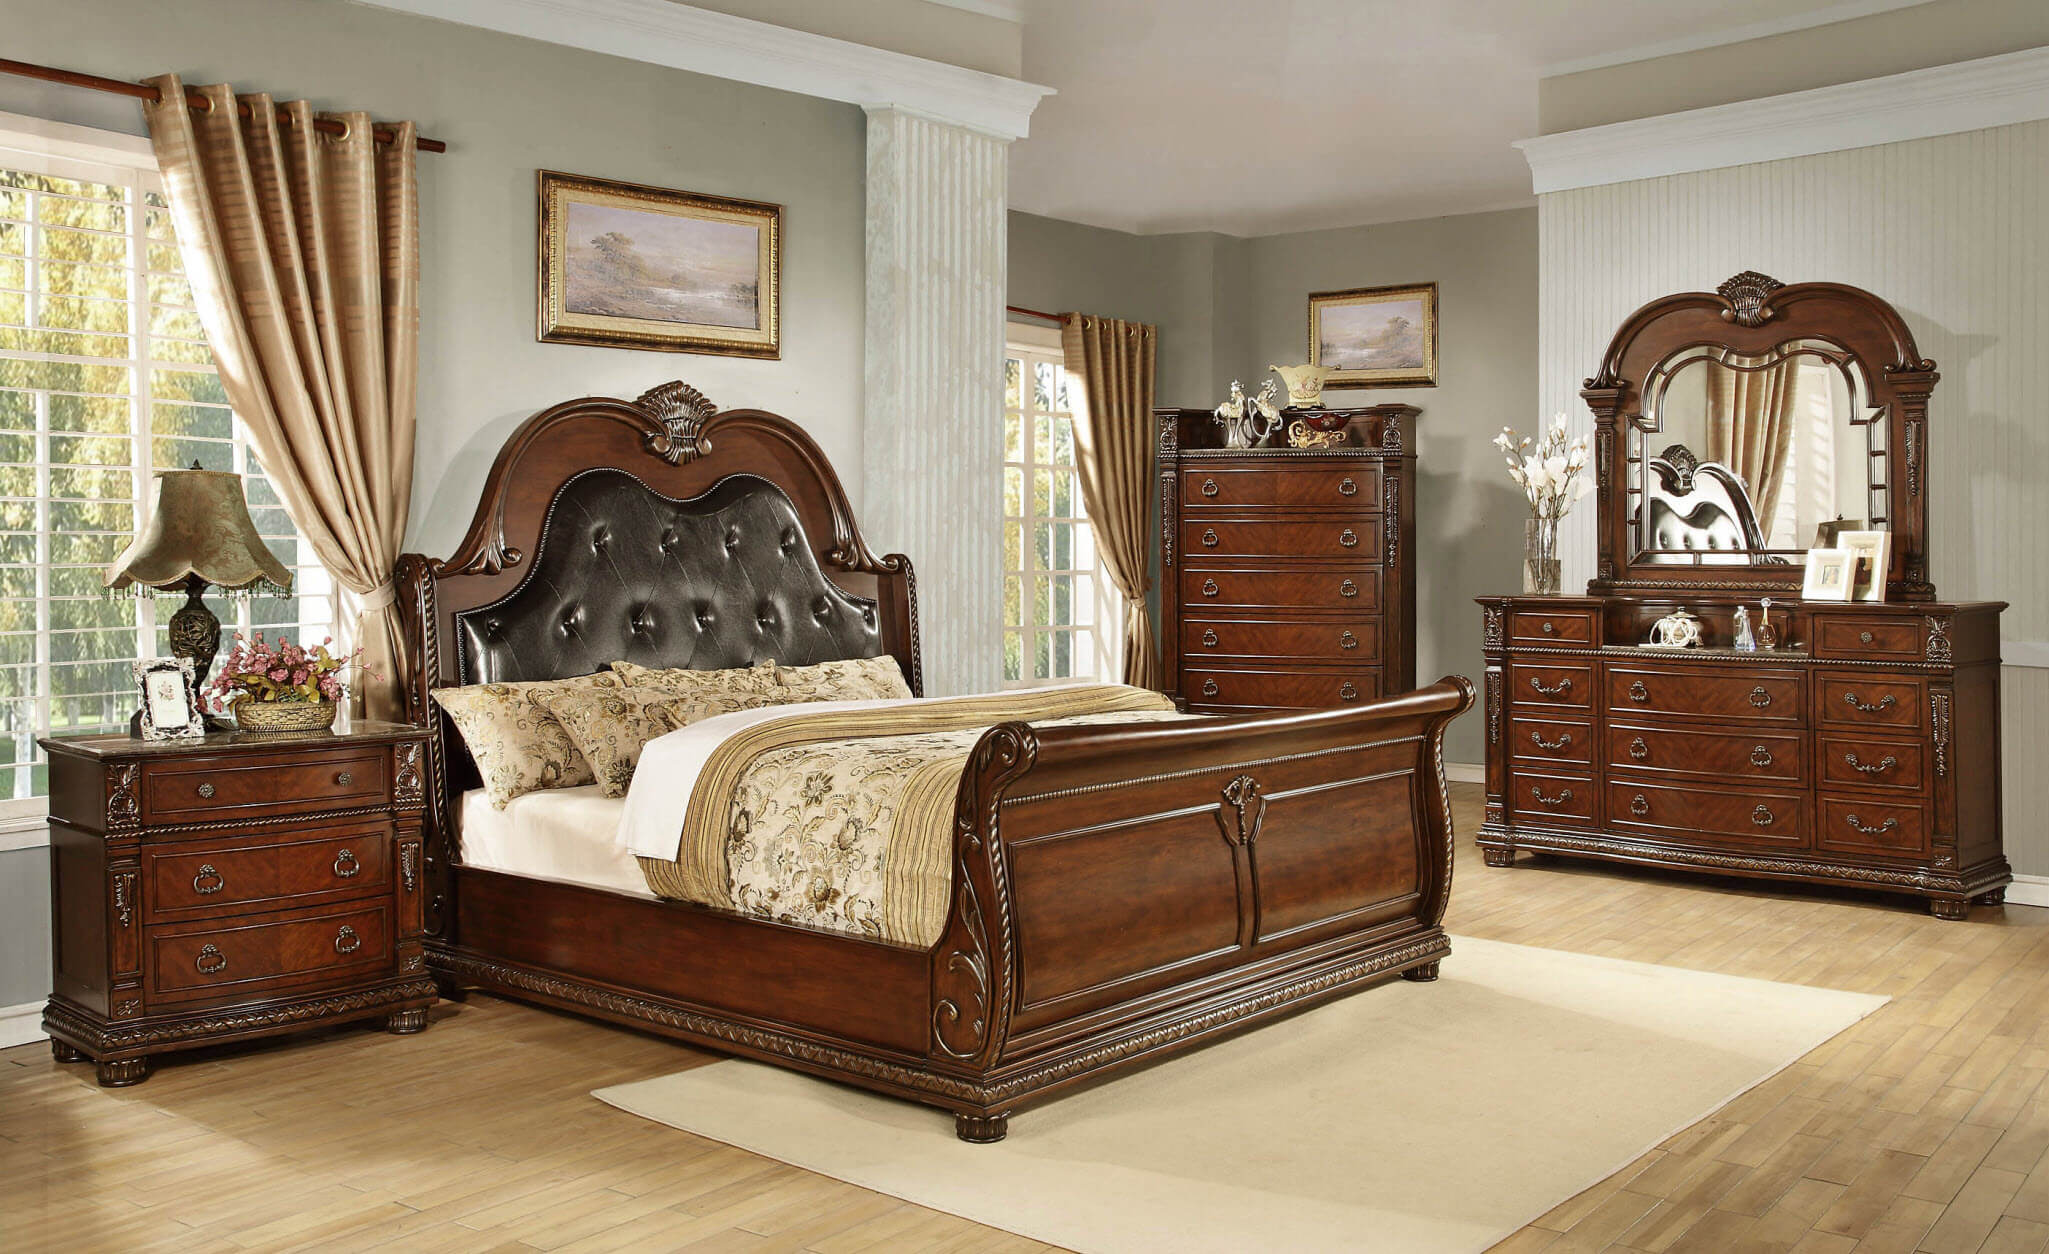 Arte De Mexico Beds Palace Marble Top Bedroom Set Bedroom Furniture Sets